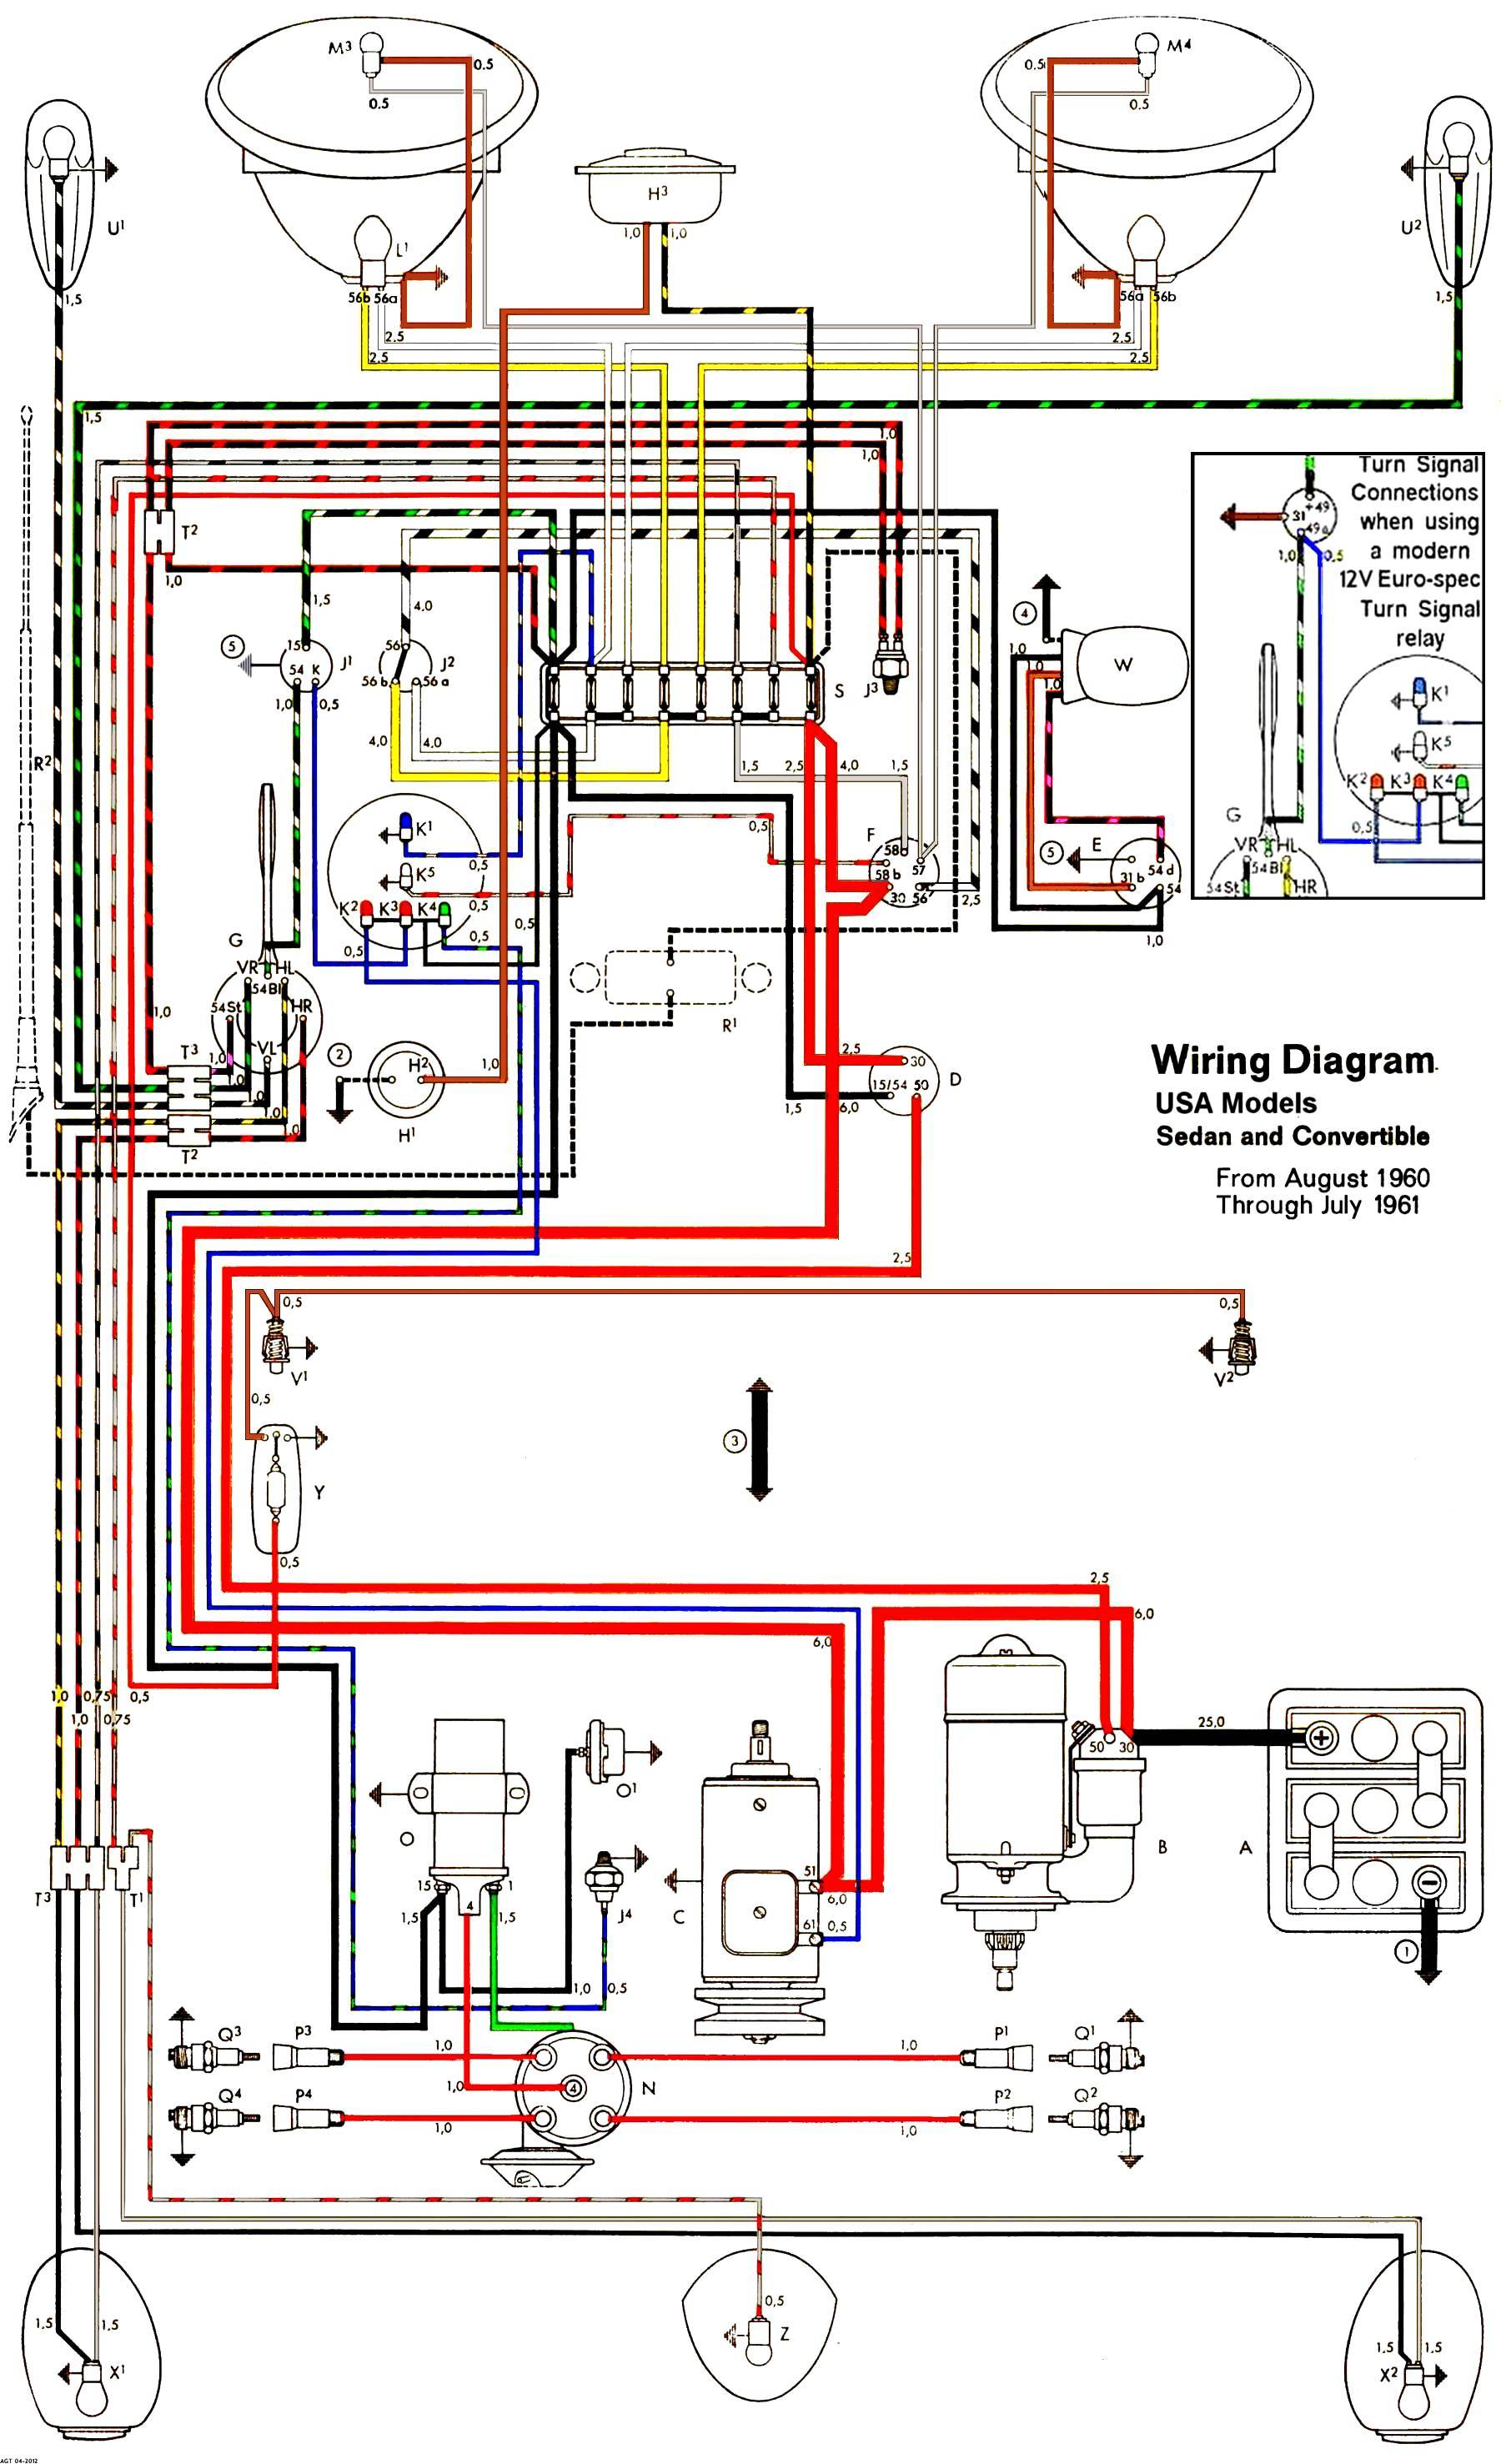 Type 1 Wiring Diagrams 1987 Camaro Fuse Diagram